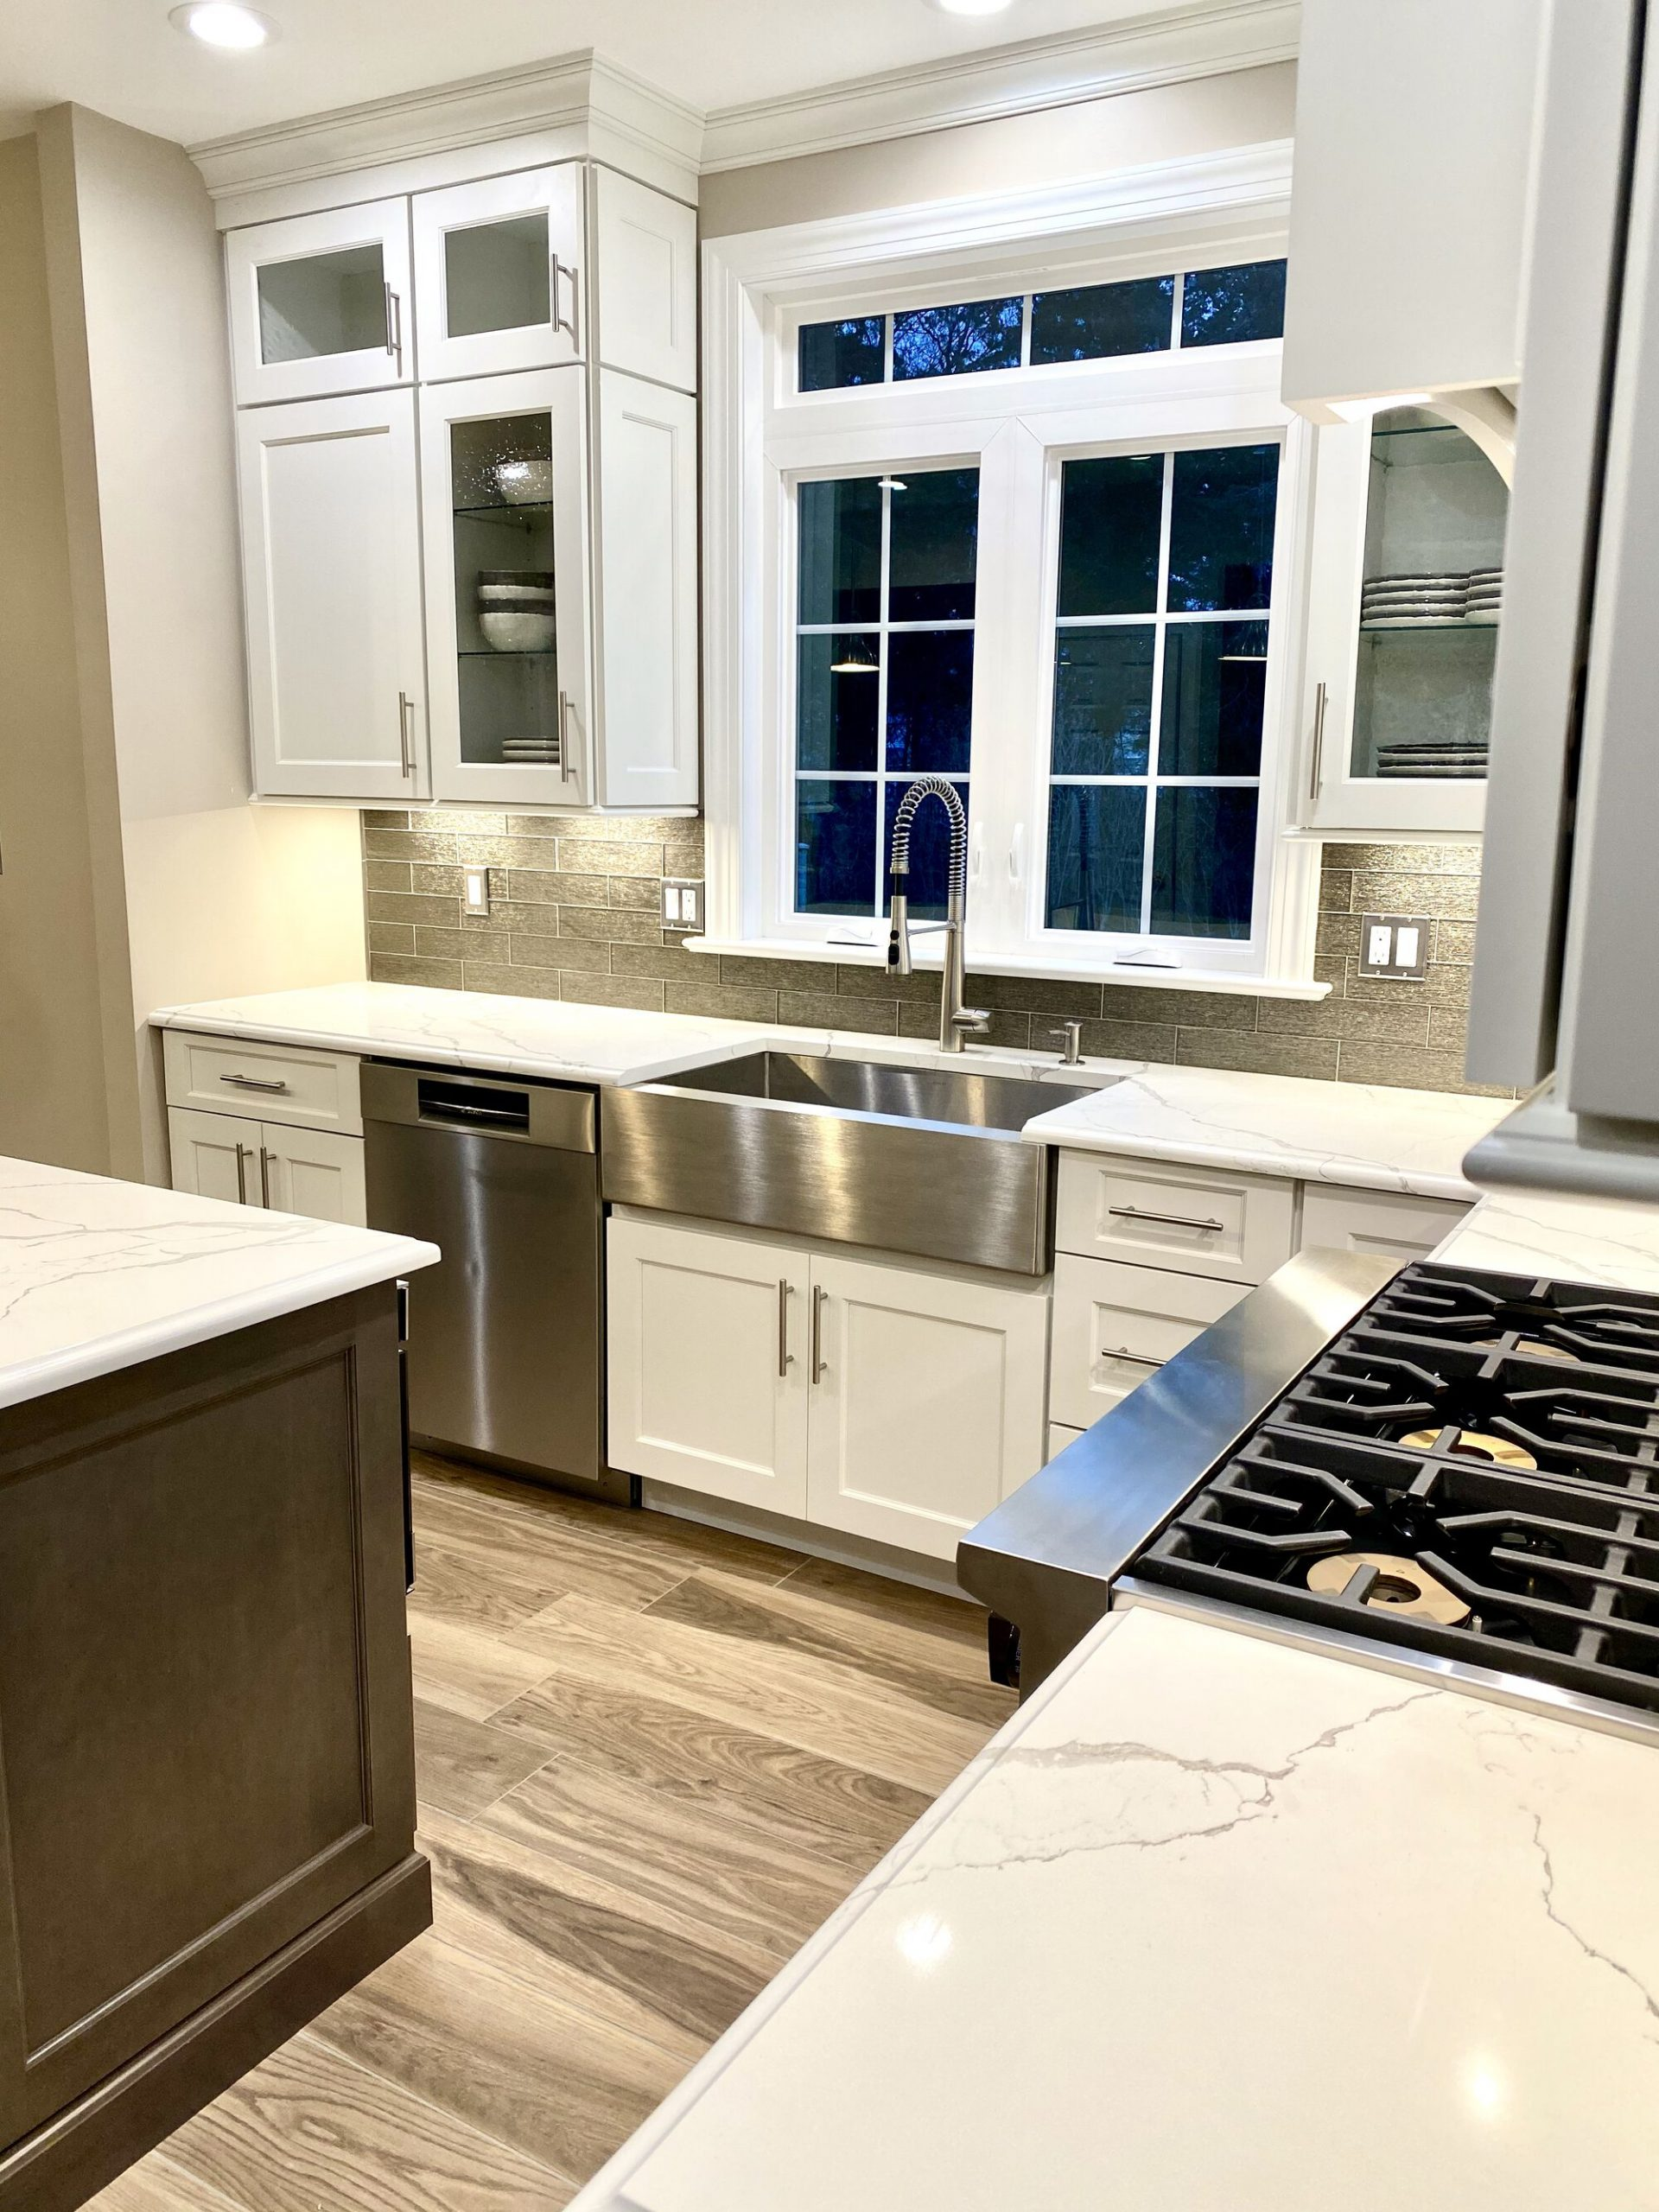 Large Window and Transom over Sink, Stainless Stel Farmhouse Sink, Custom Wood Cabinetry, Viking Appliances in Somerset NJ